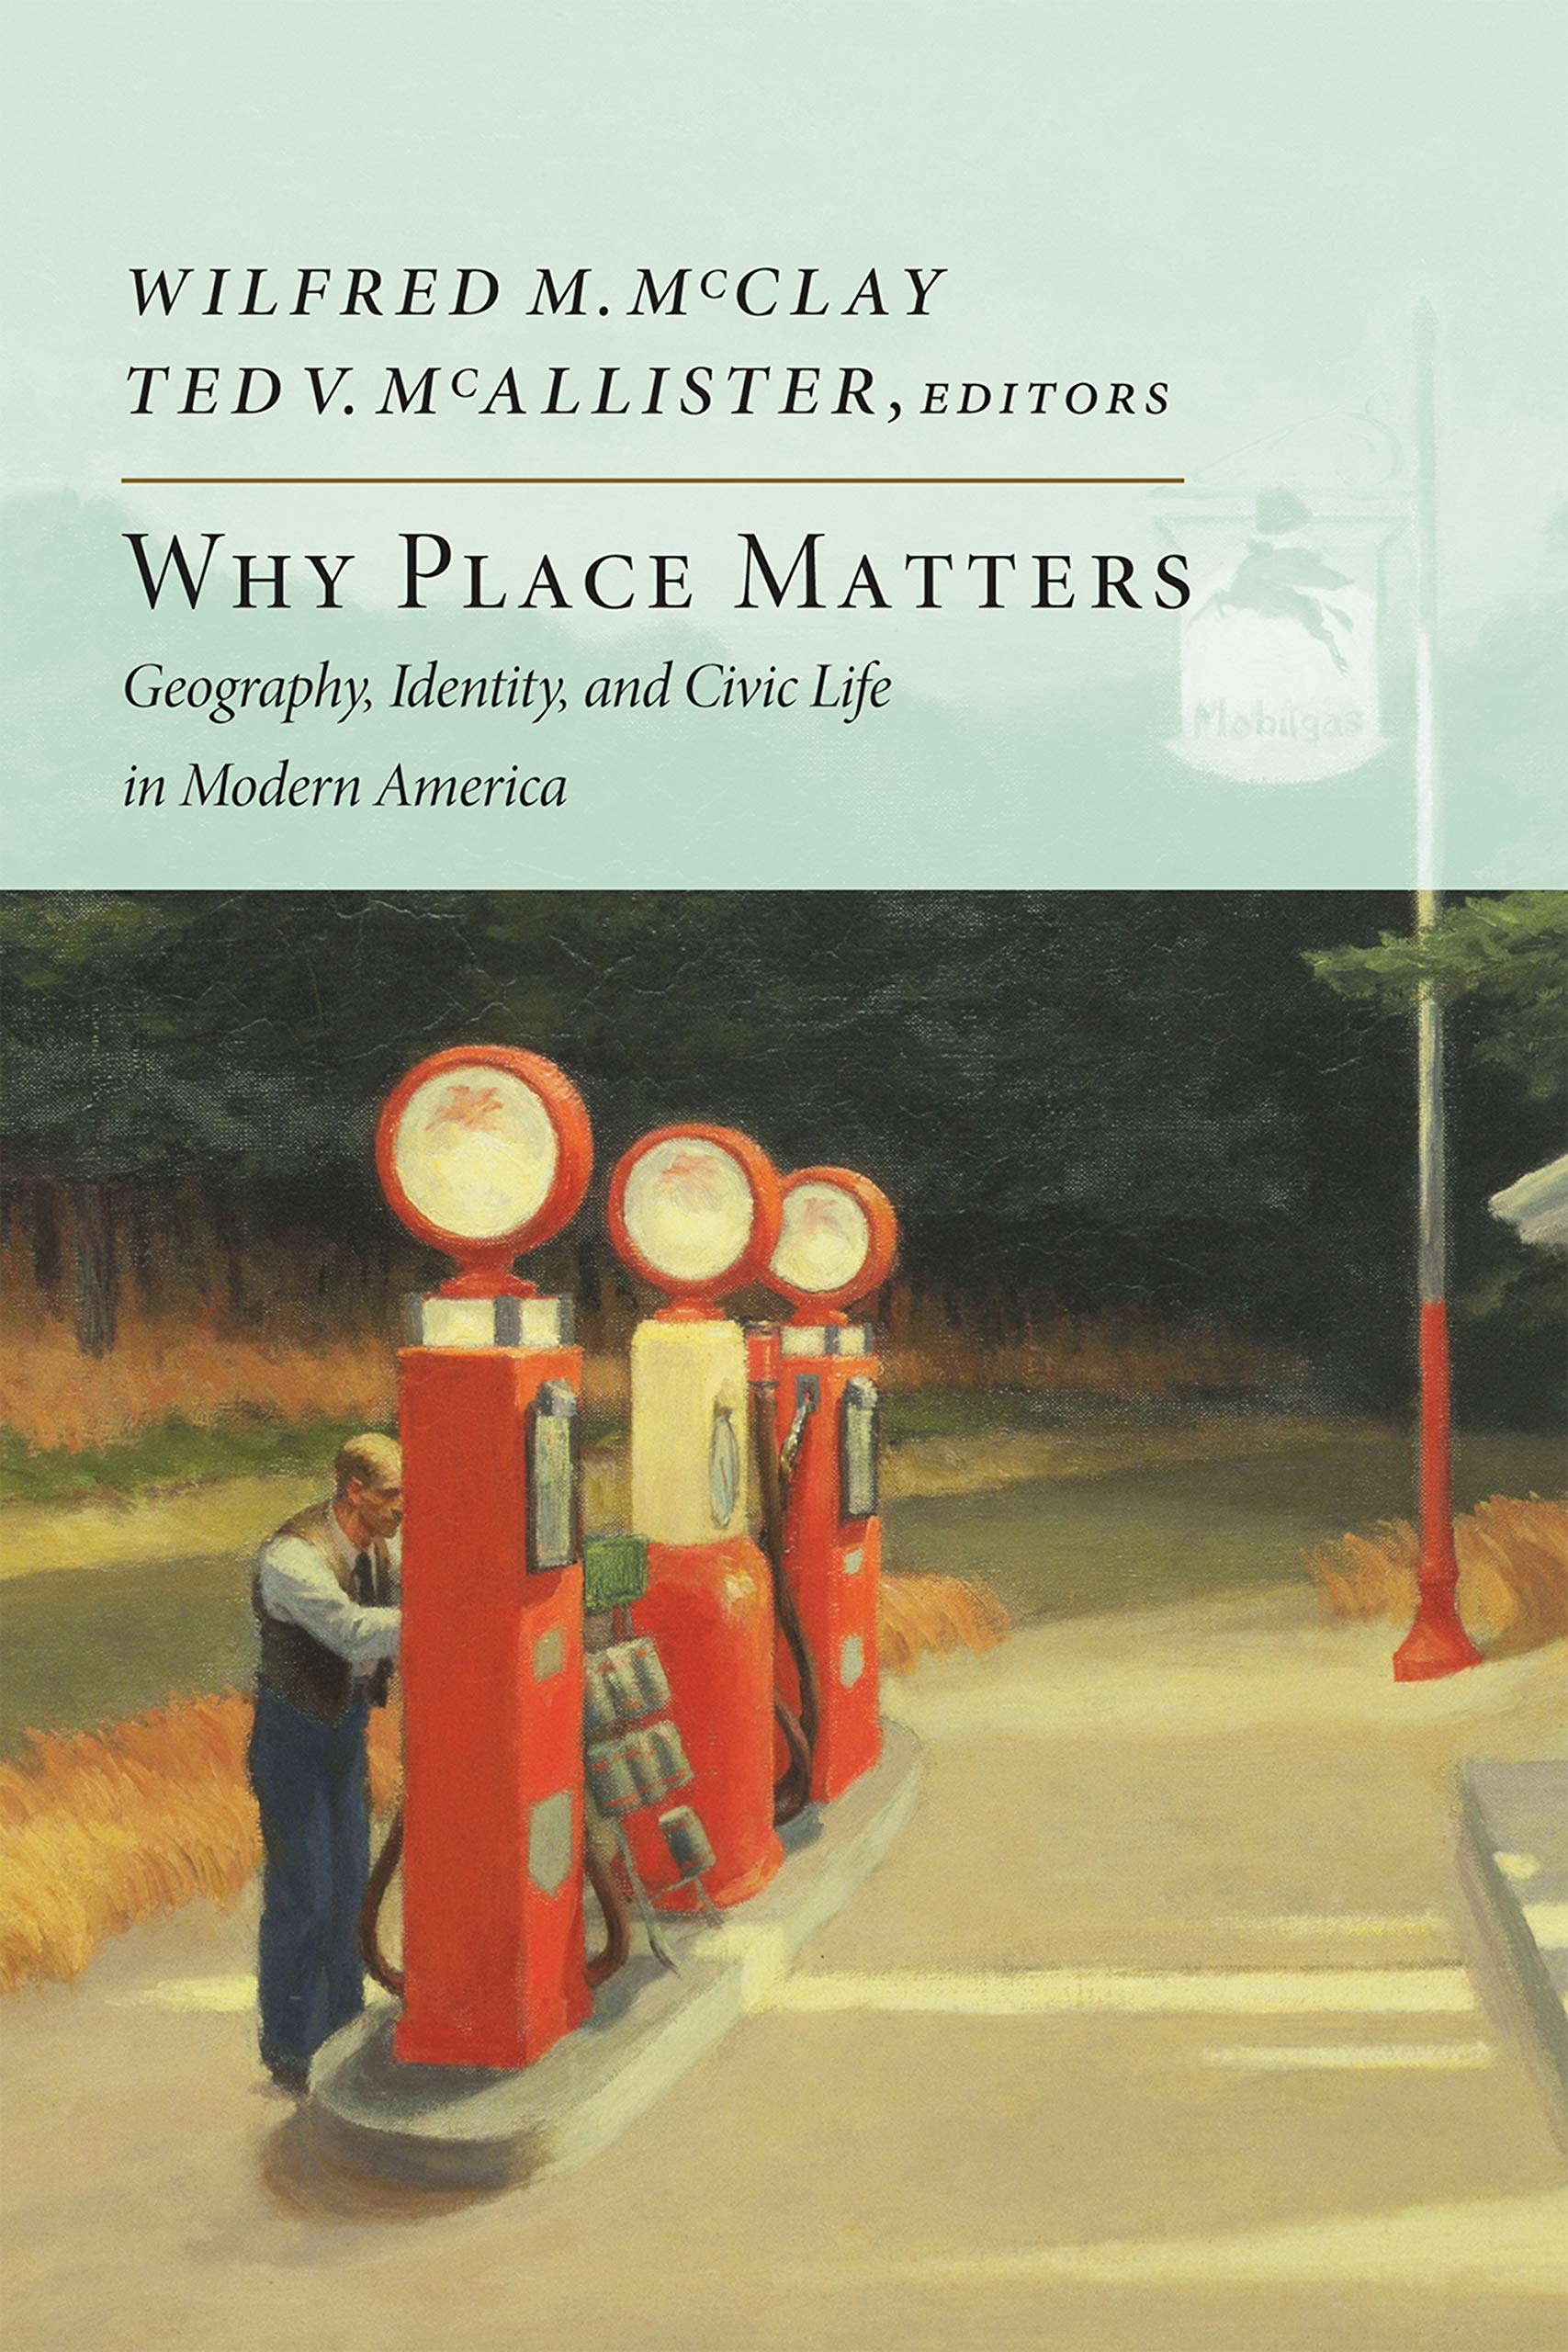 Geography Identity Why Place Matters and Civic Life in Modern America